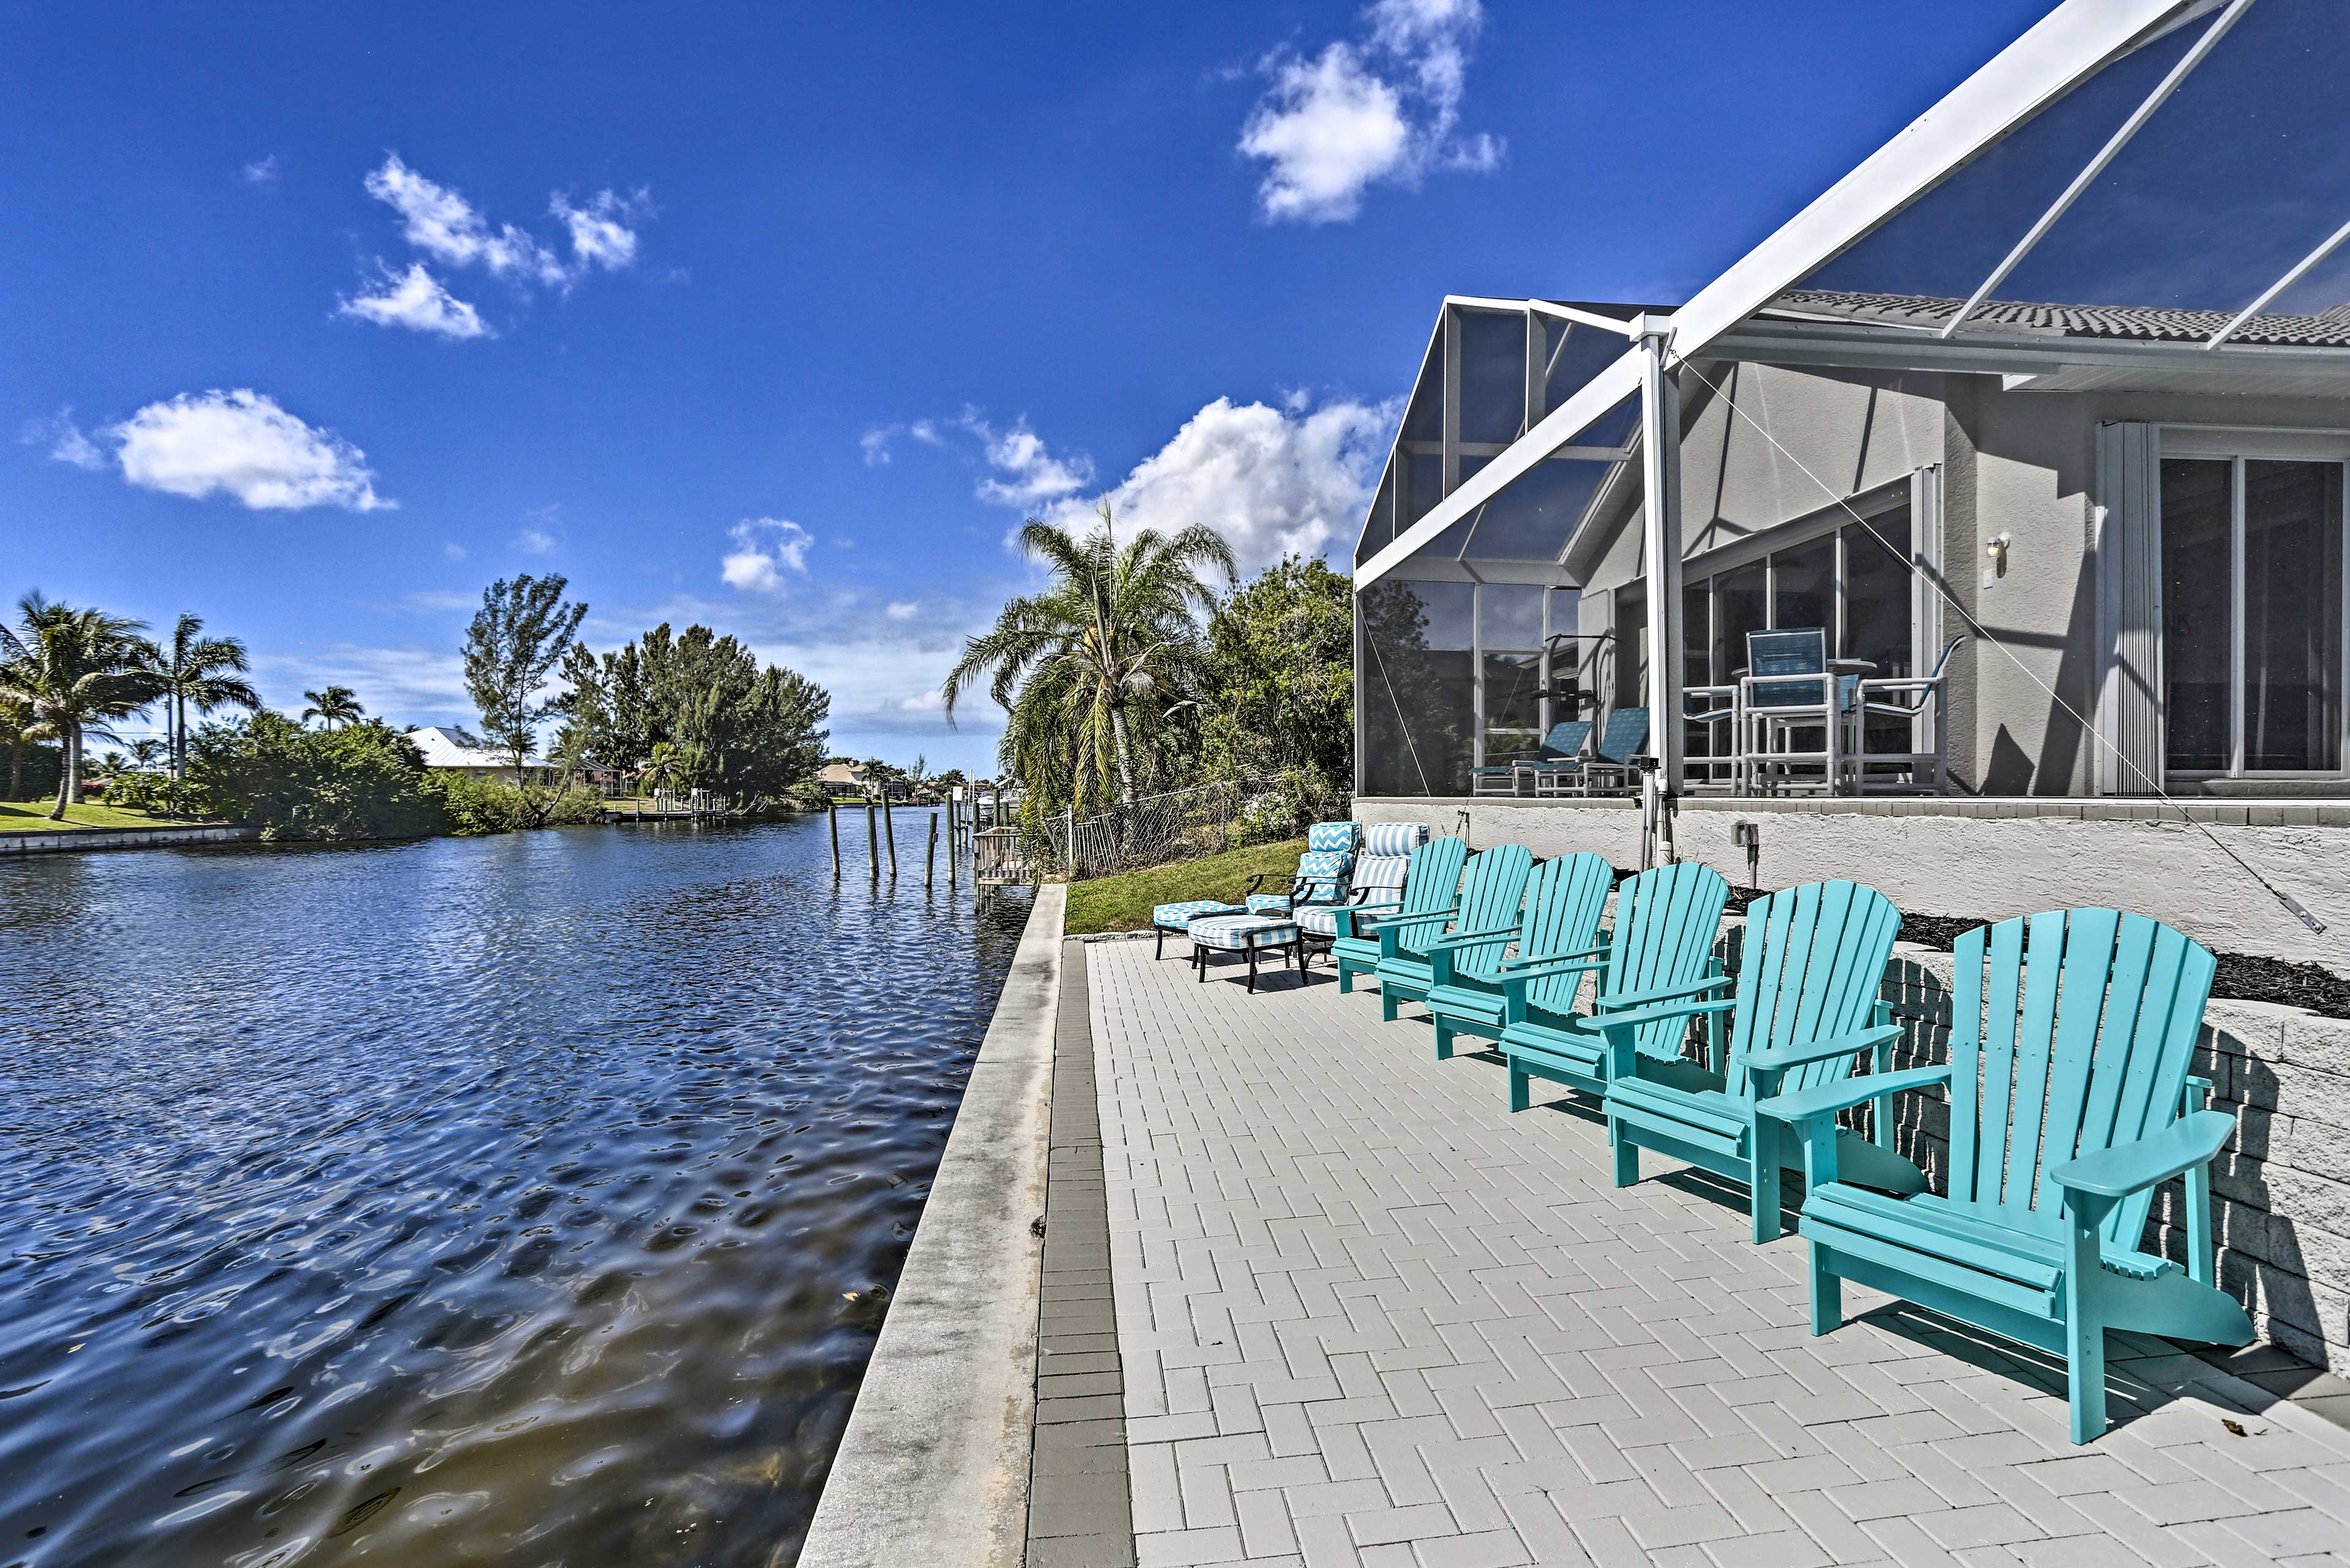 You'll never want to leave this Sunshine State sanctuary!